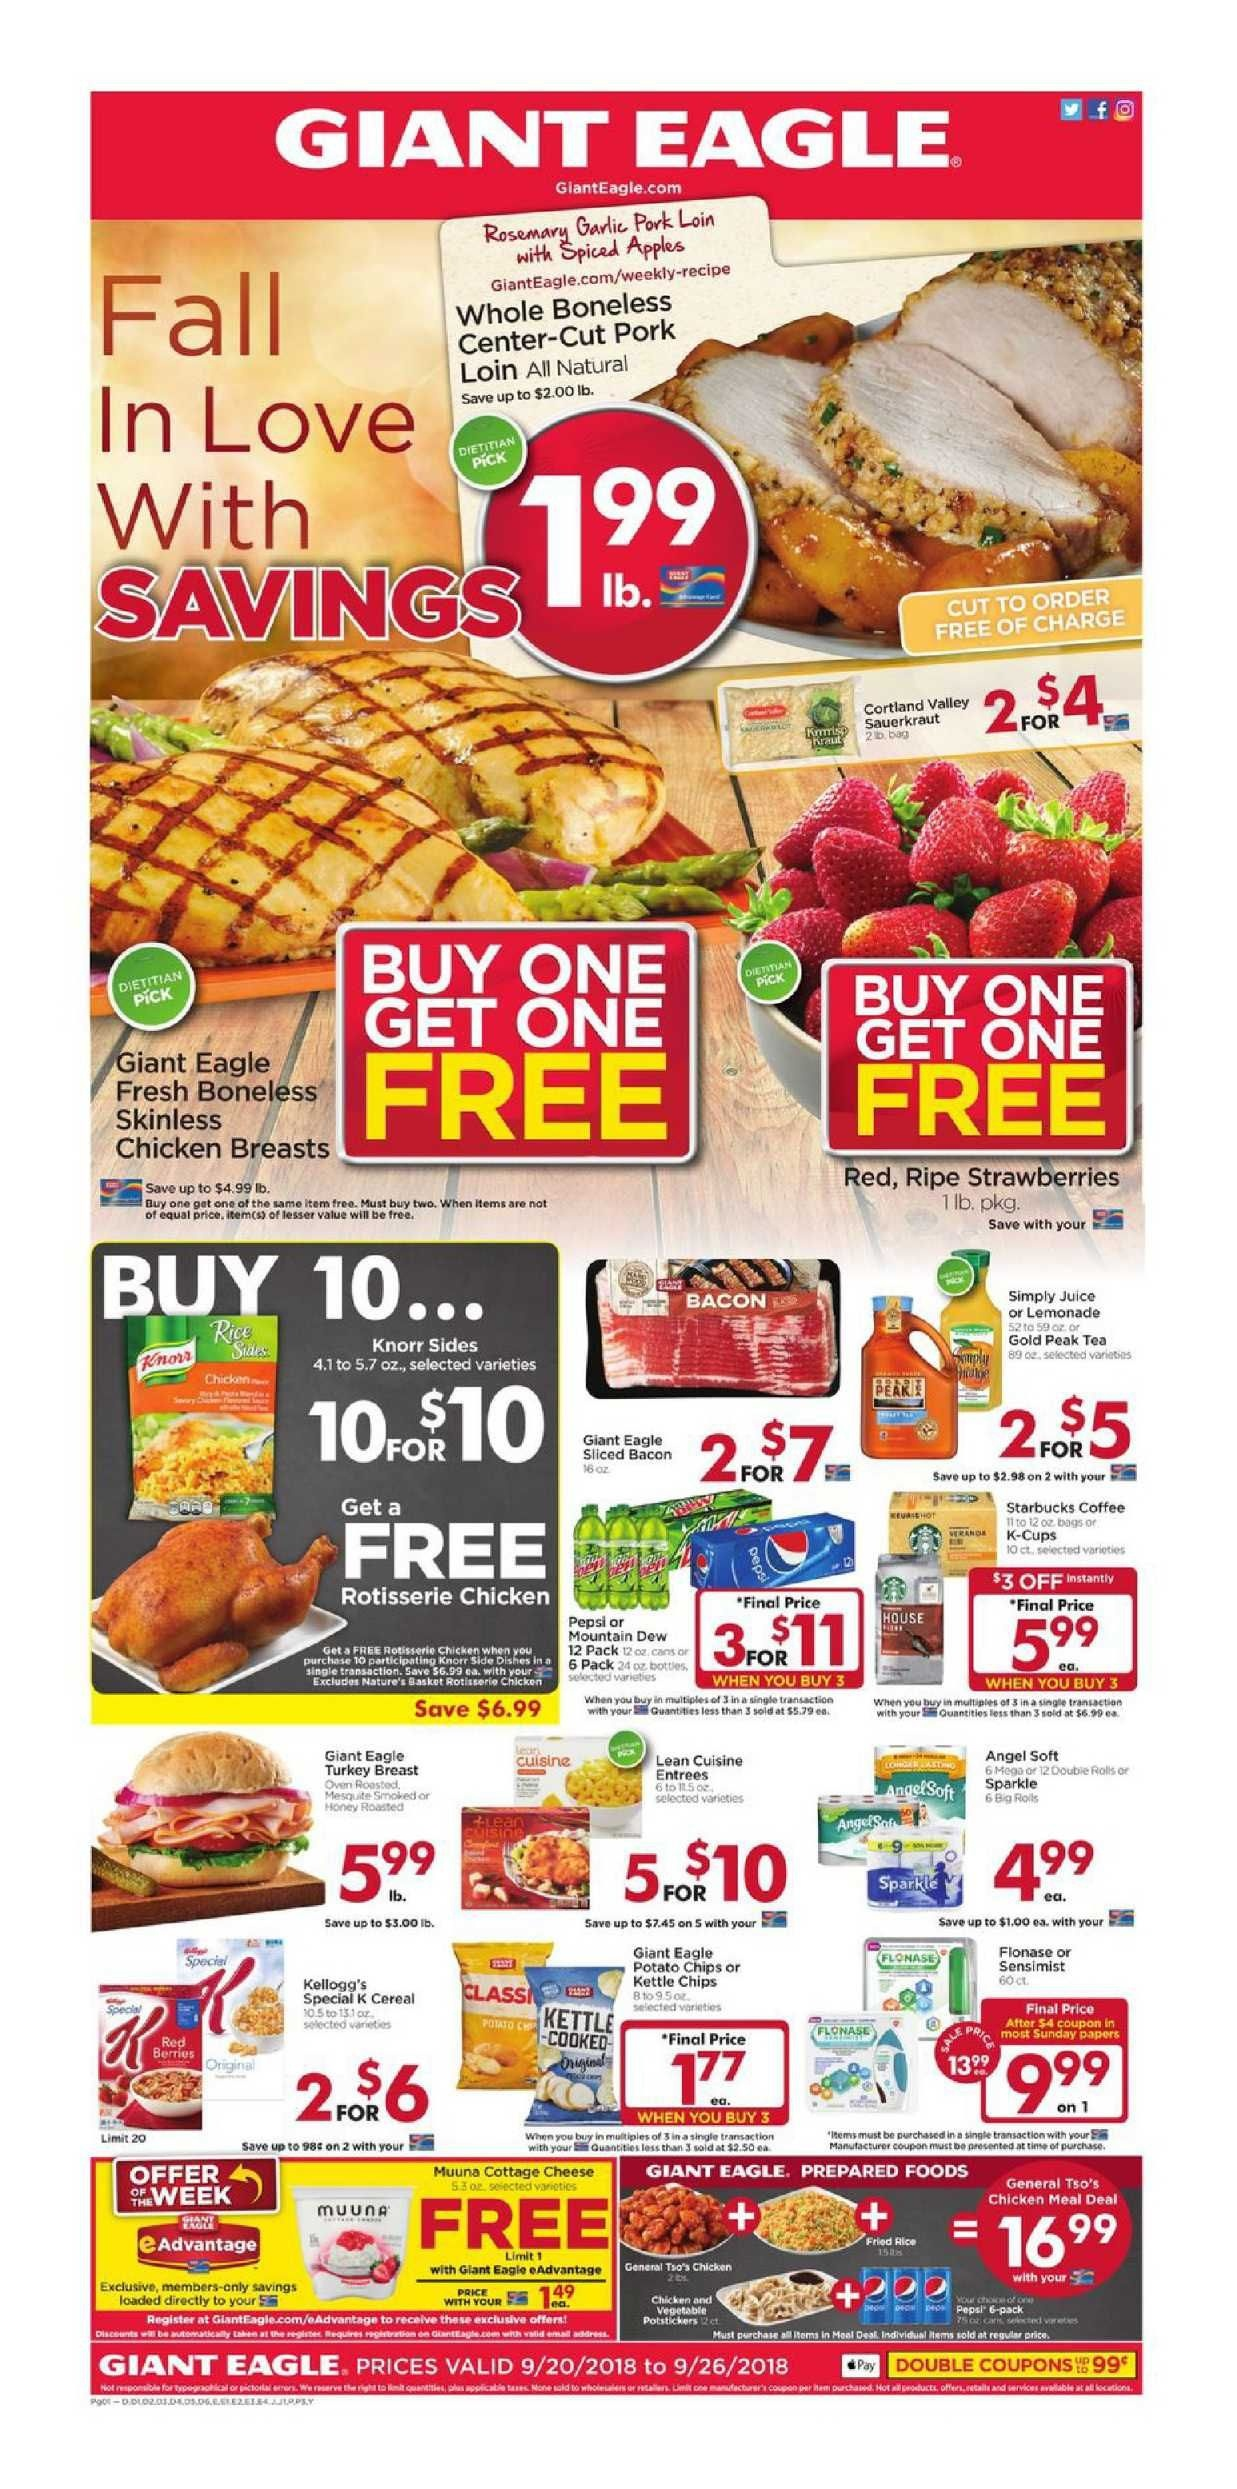 Giant Eagle Weekly Ad Flyer January 17 - 23, 2019 | Weekly Ad - Free Printable Giant Eagle Coupons